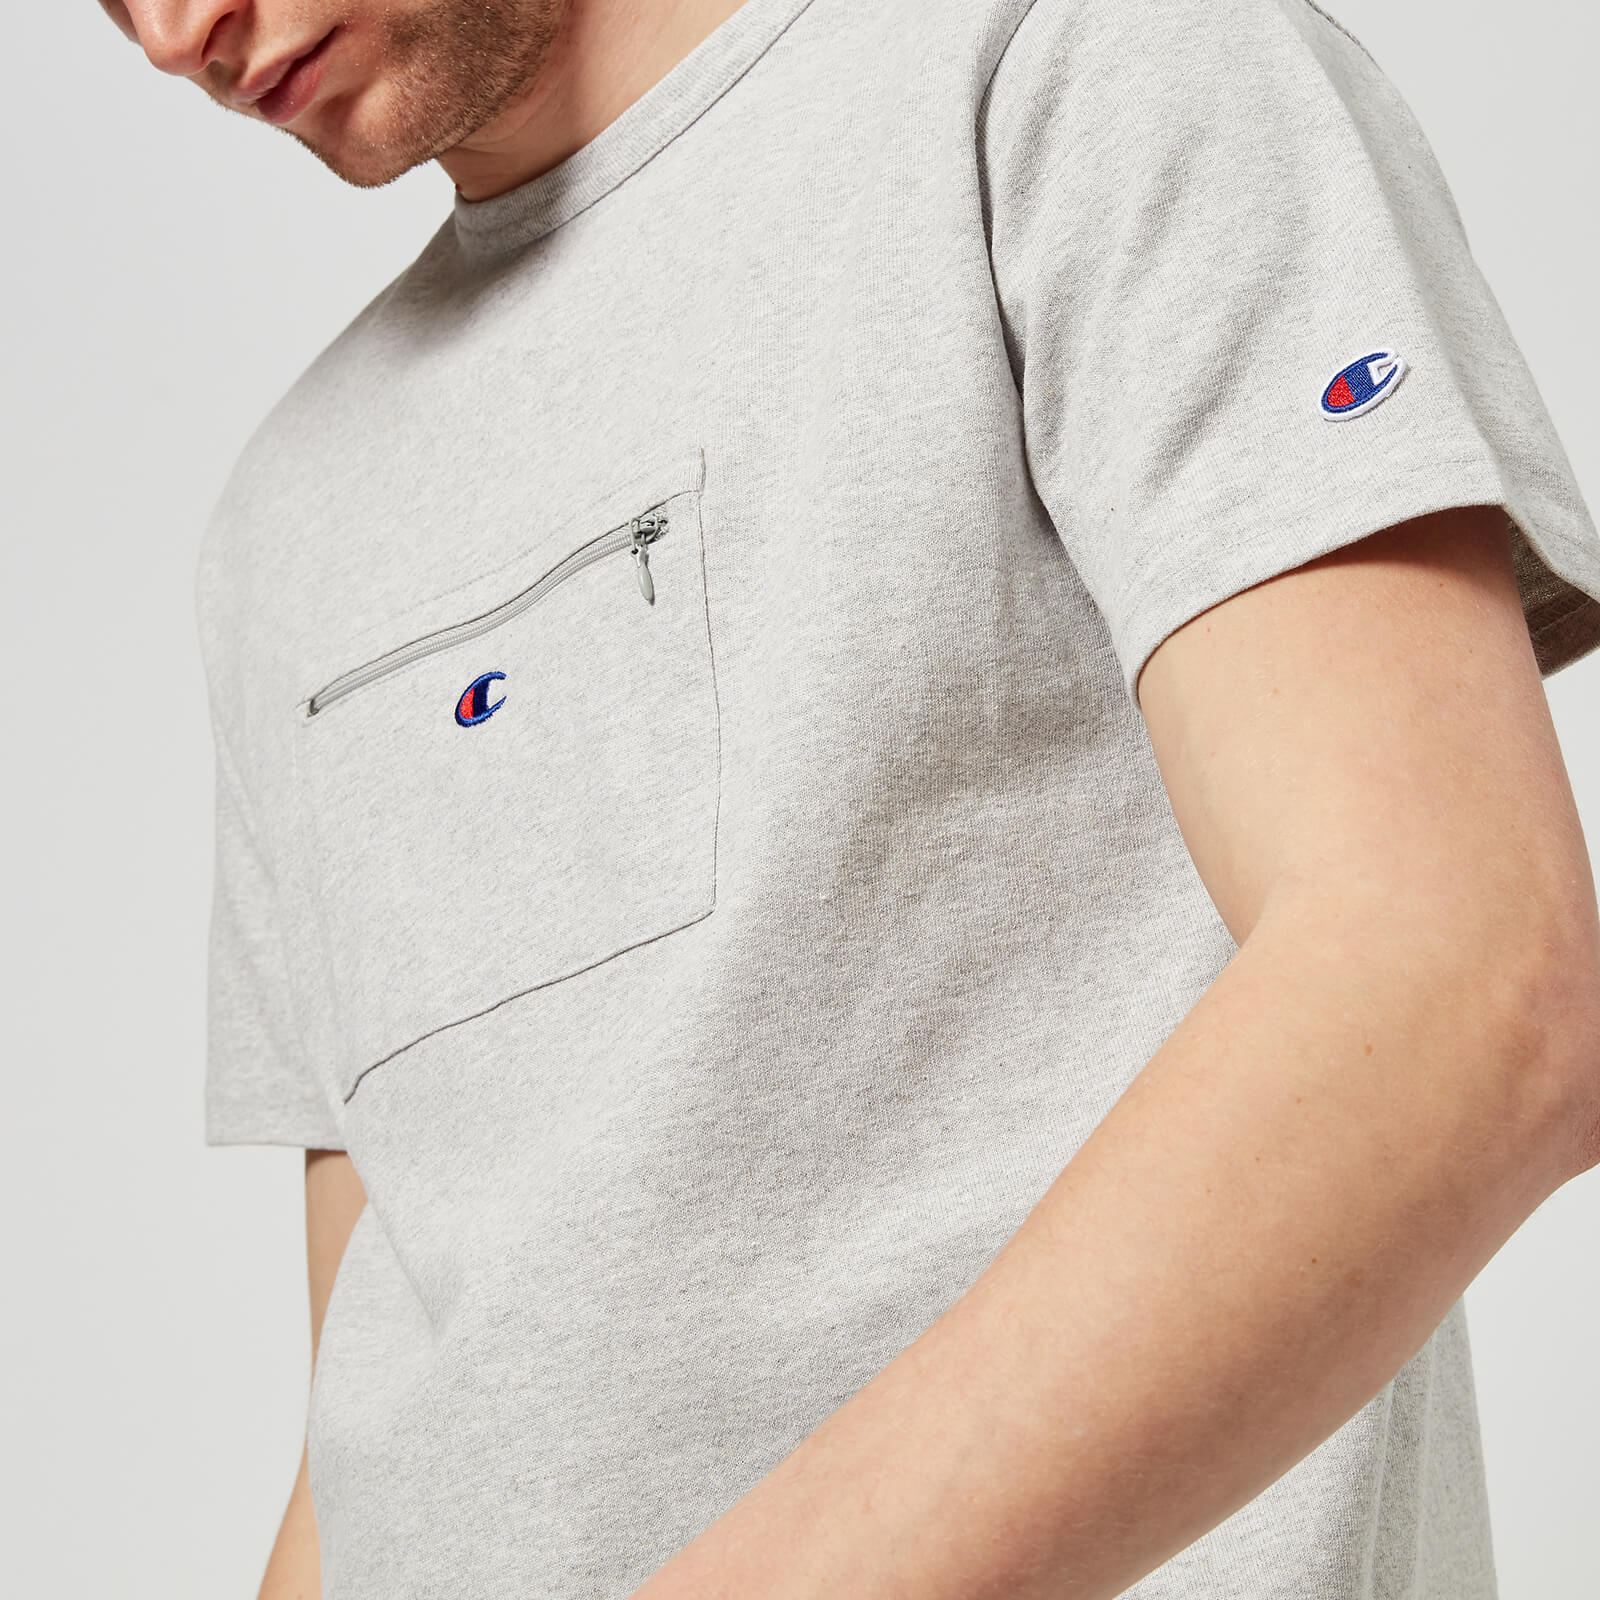 8b43e80aad9a Champion X Beams Men s Front Pocket T-Shirt - Grey - Free UK Delivery over  £50